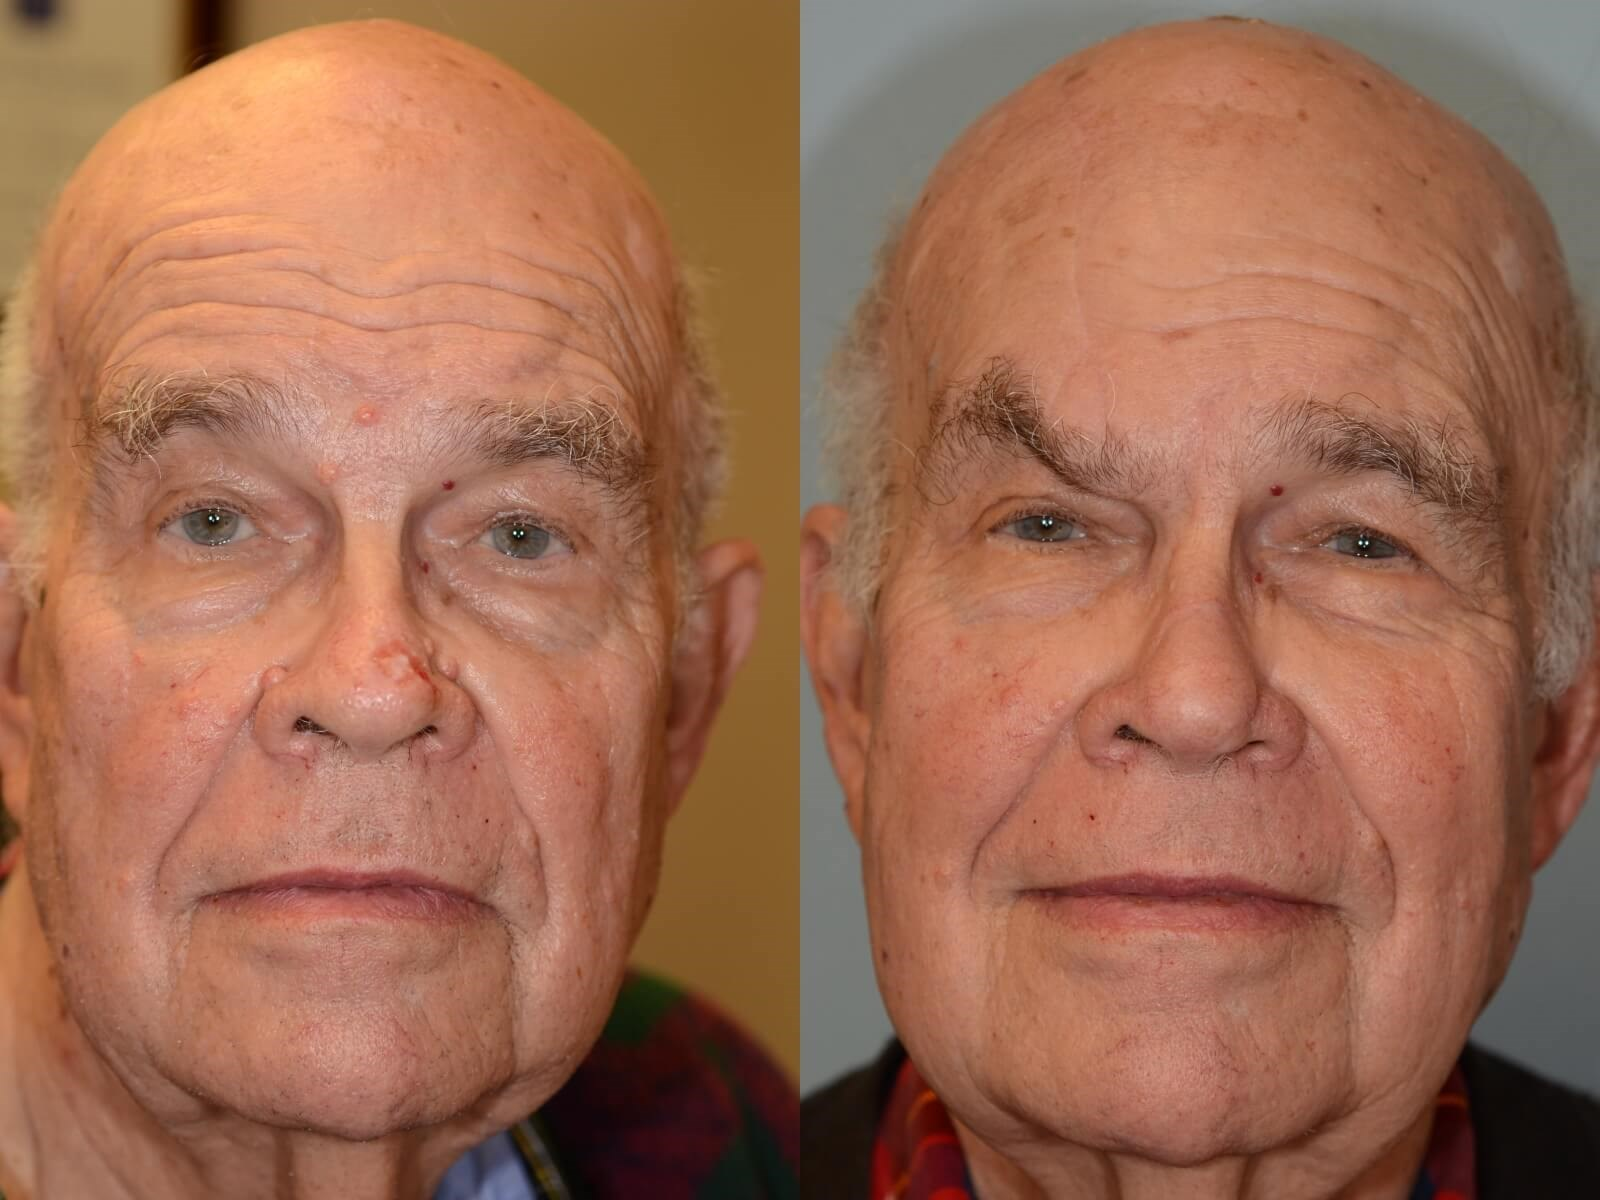 Forehead Flap Reconstruction Before and 4 months After